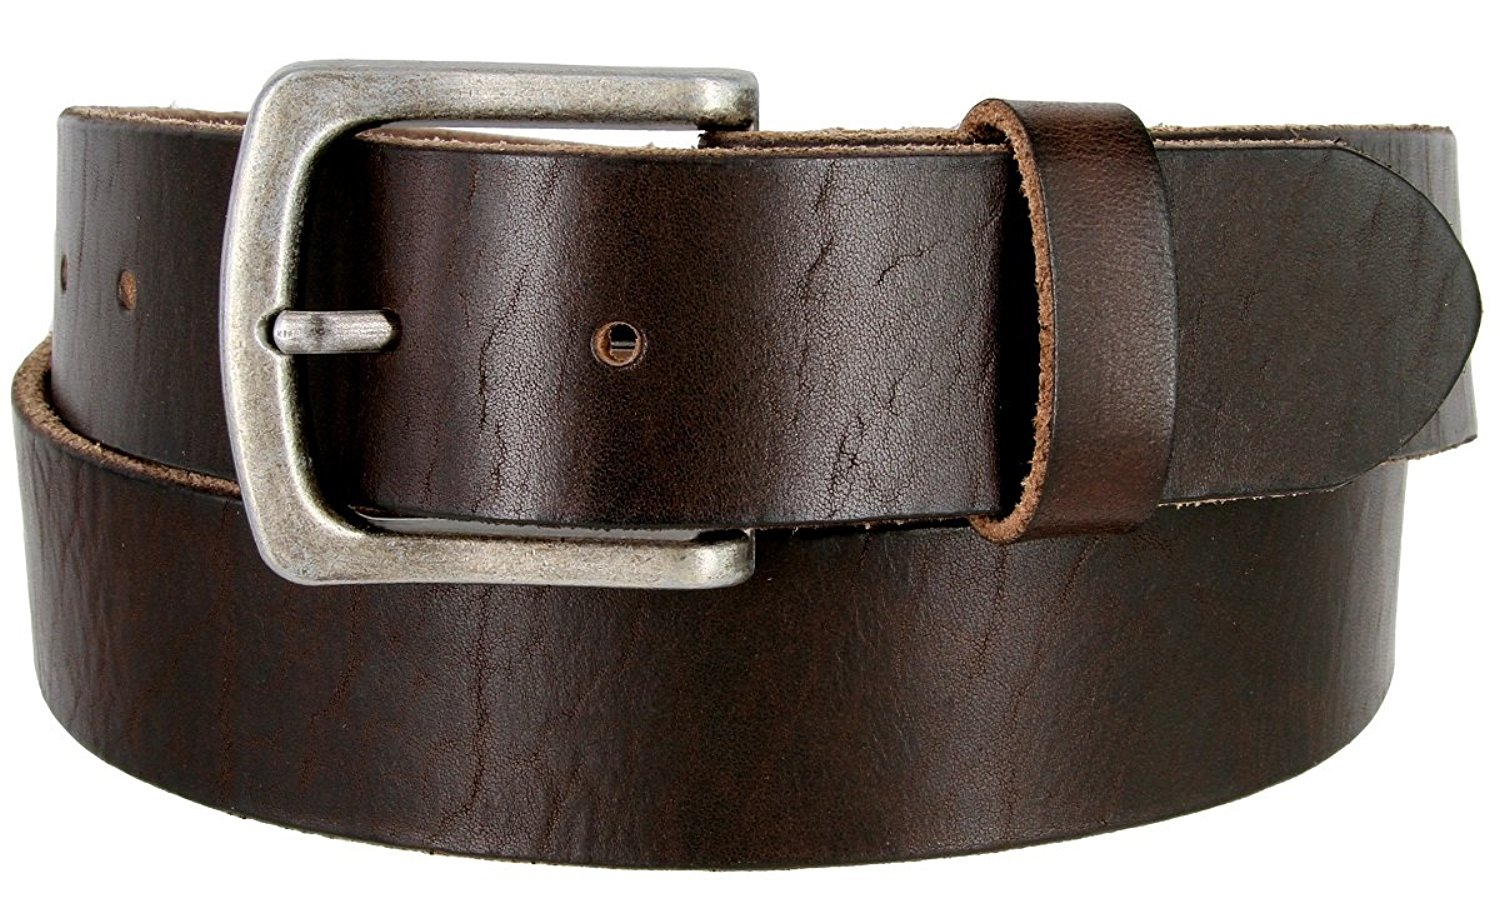 "Men's Vintage Full Grain Leather Casual Jeans Belt 1-1/2"" = 38mm wide BS40-FCB1-ANR"